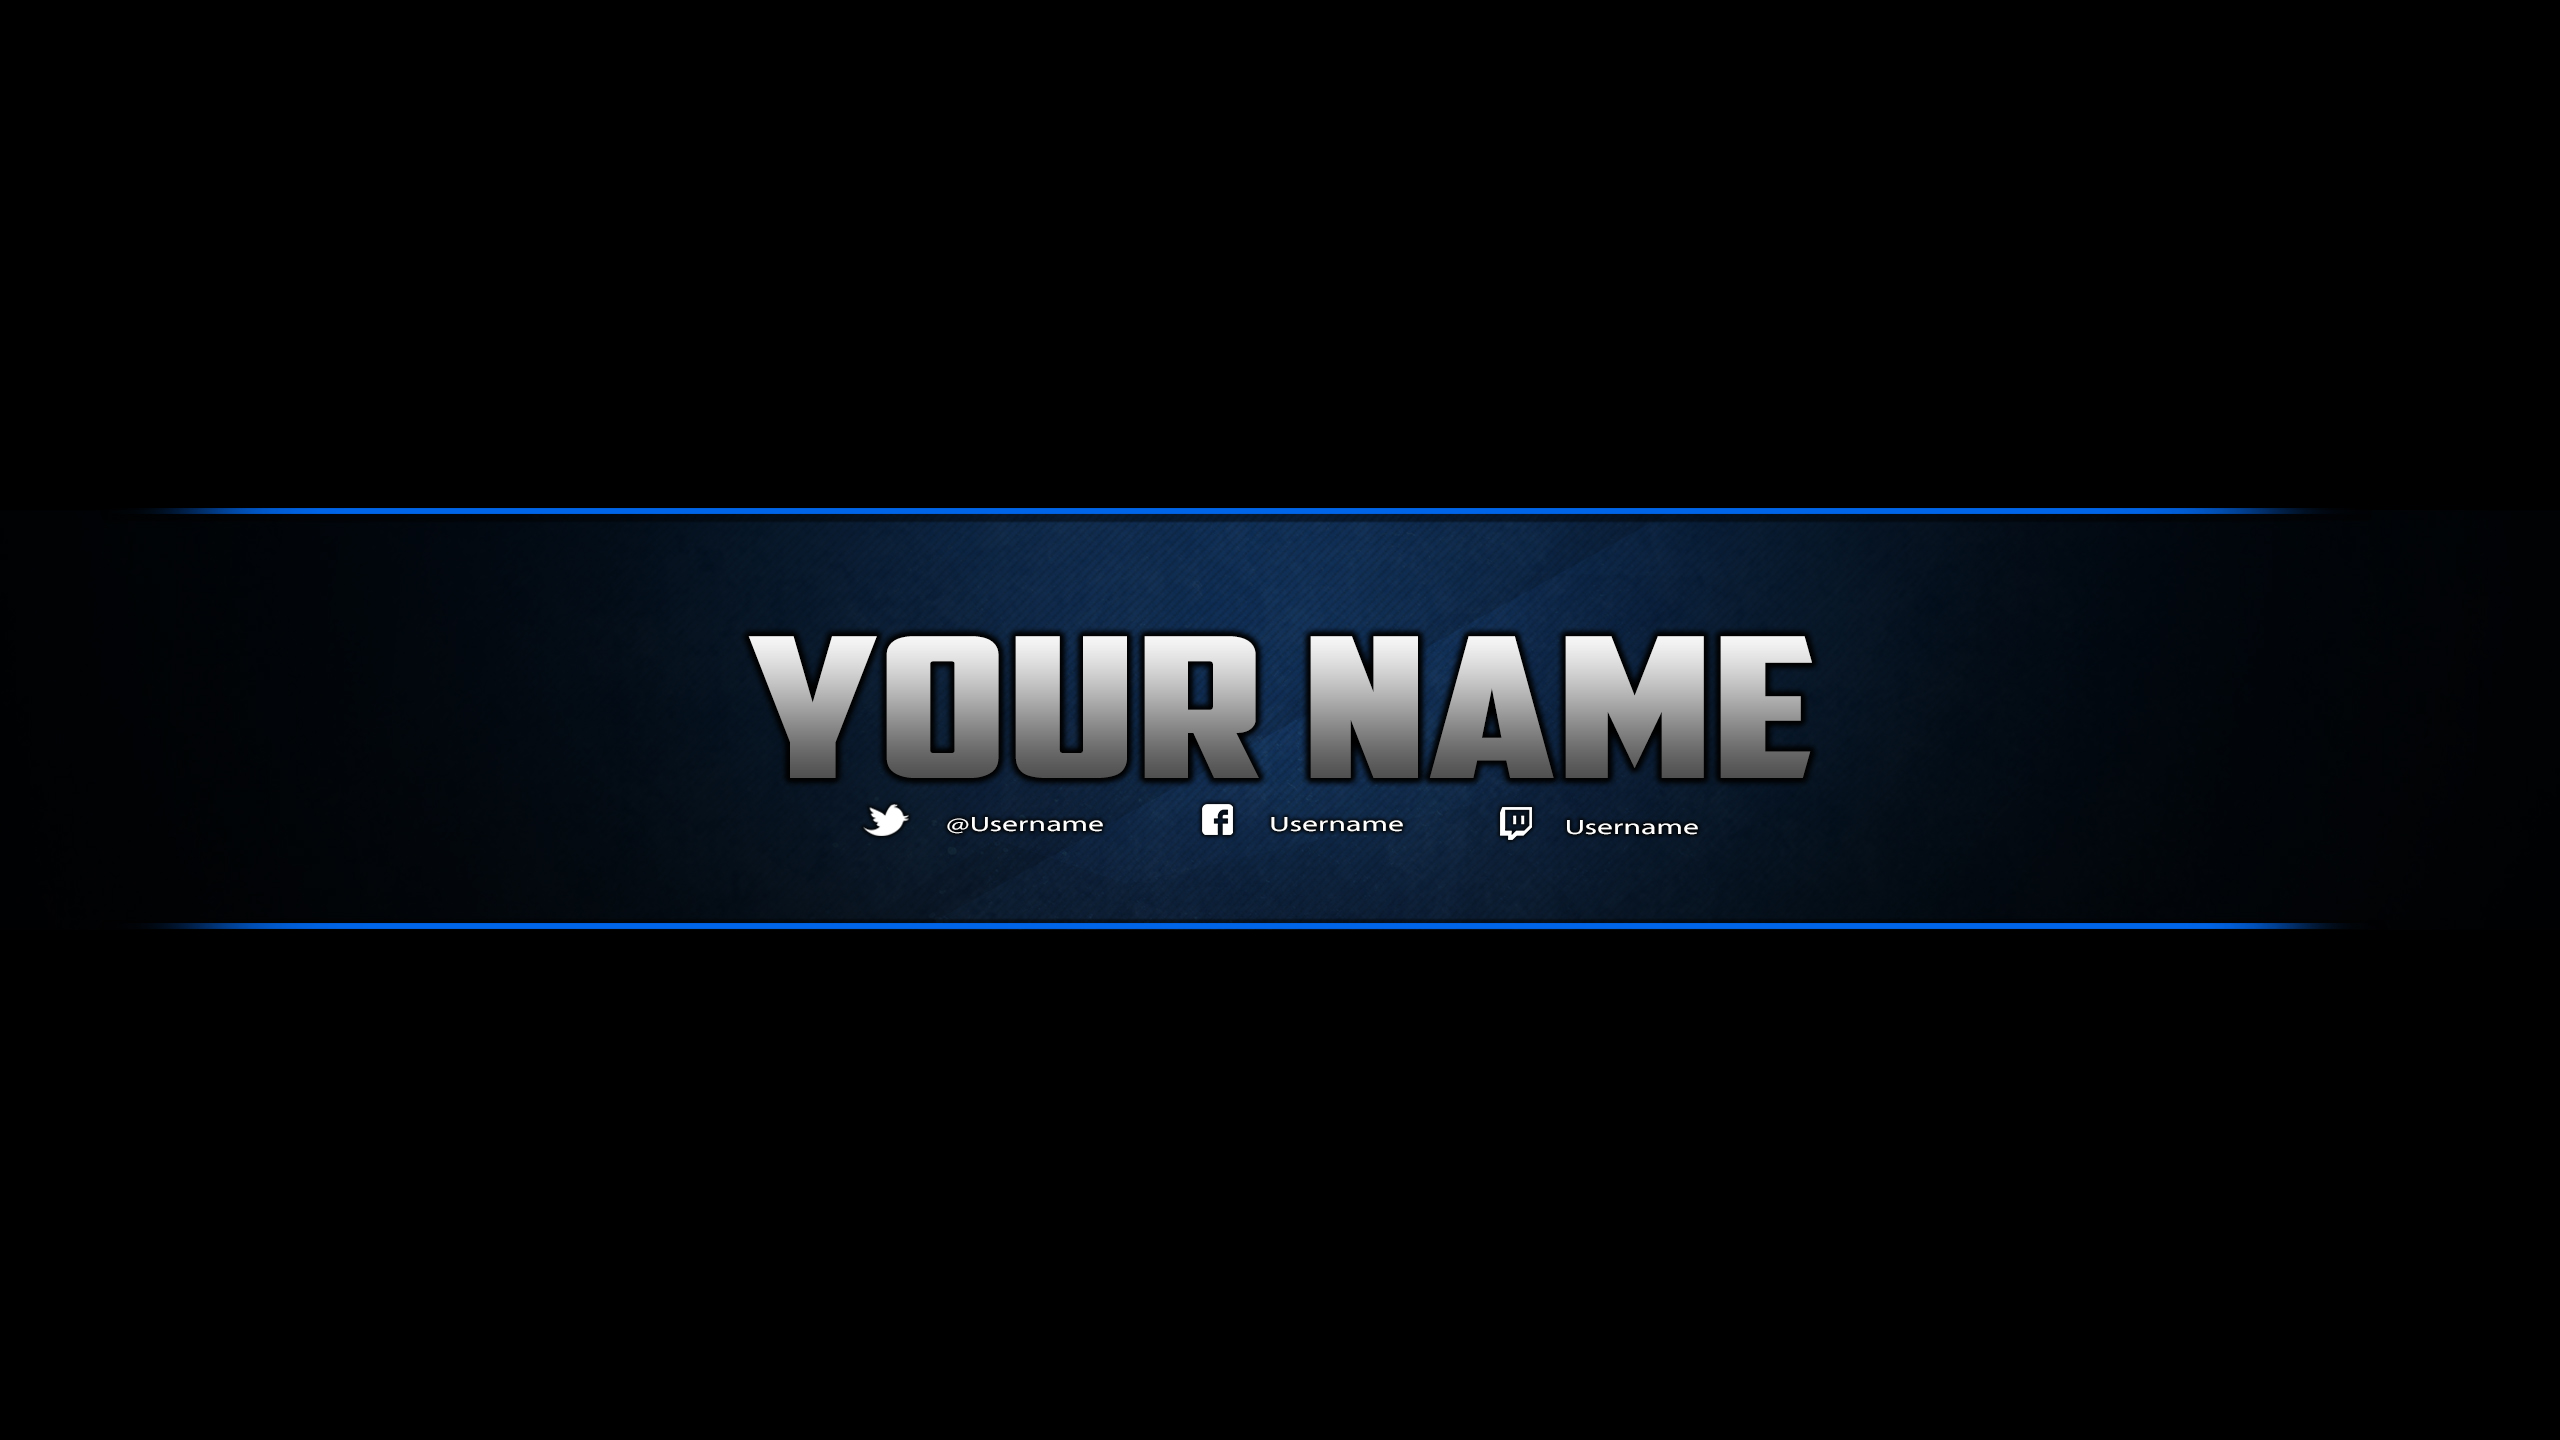 Youtube Banner Template Photoshop By DazGames On DeviantArt